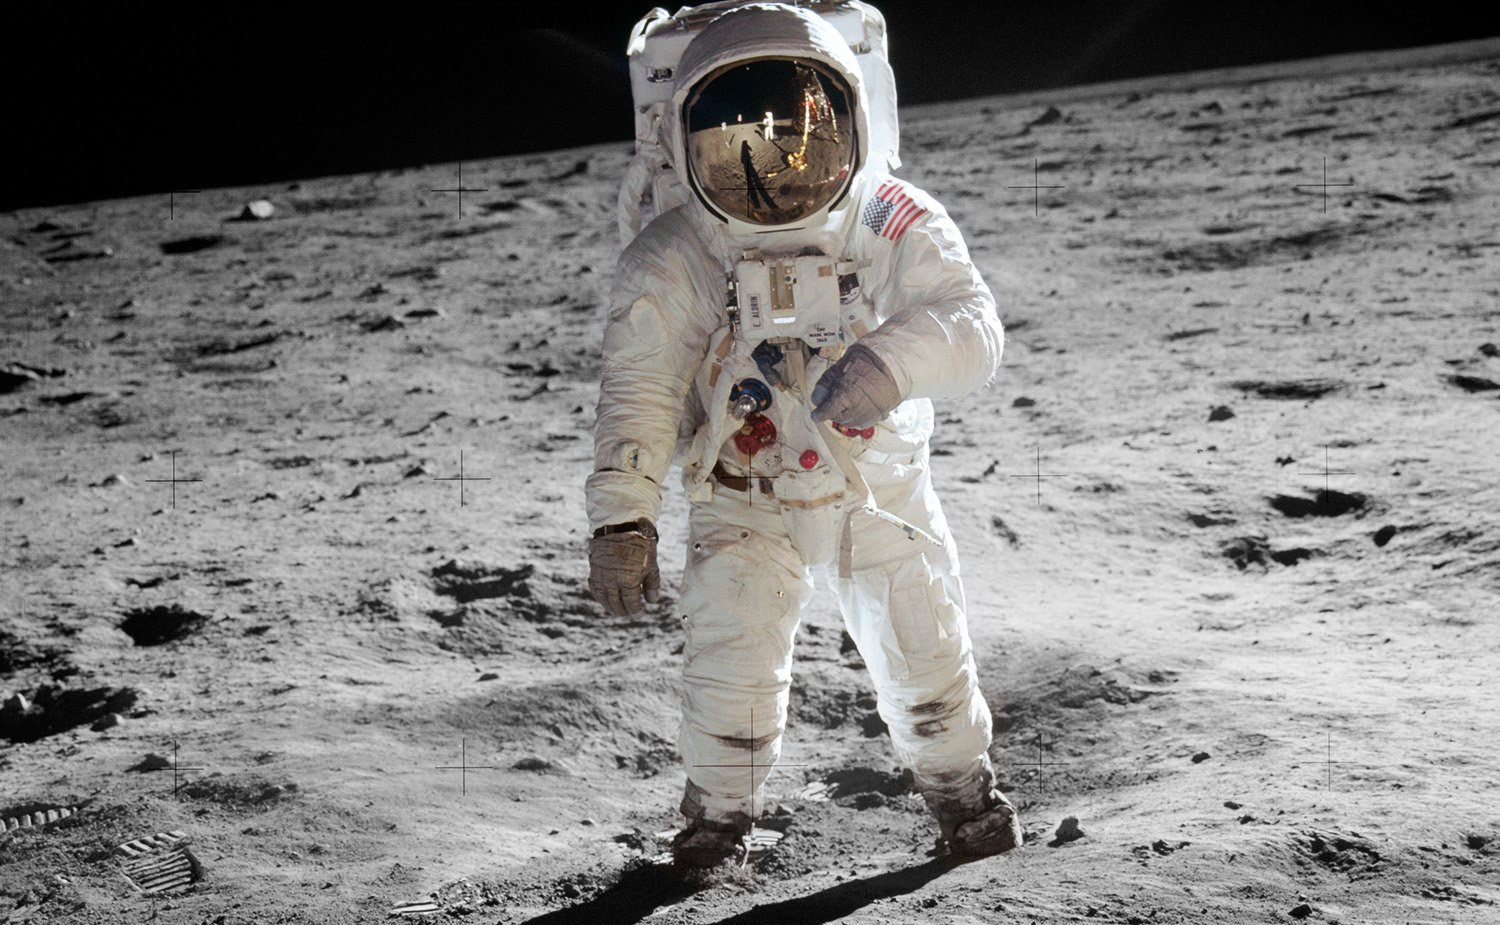 Astronaut Buzz Aldrin on the surface of the moon during the Apollo 11 moonwalk, 21 July 1969